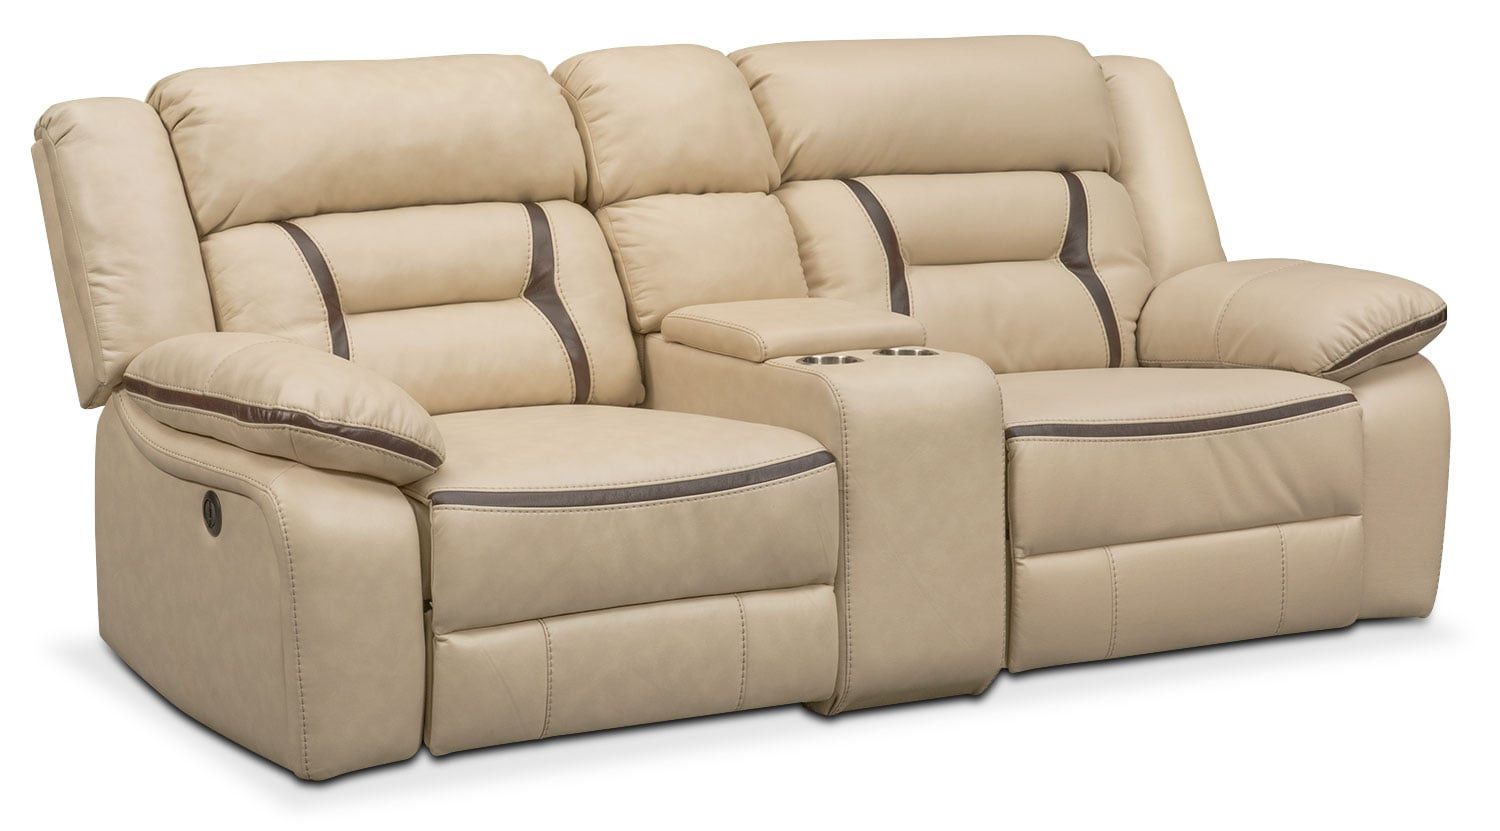 Living Room Furniture - Remi 3-Piece Power Reclining Sofa - Cream